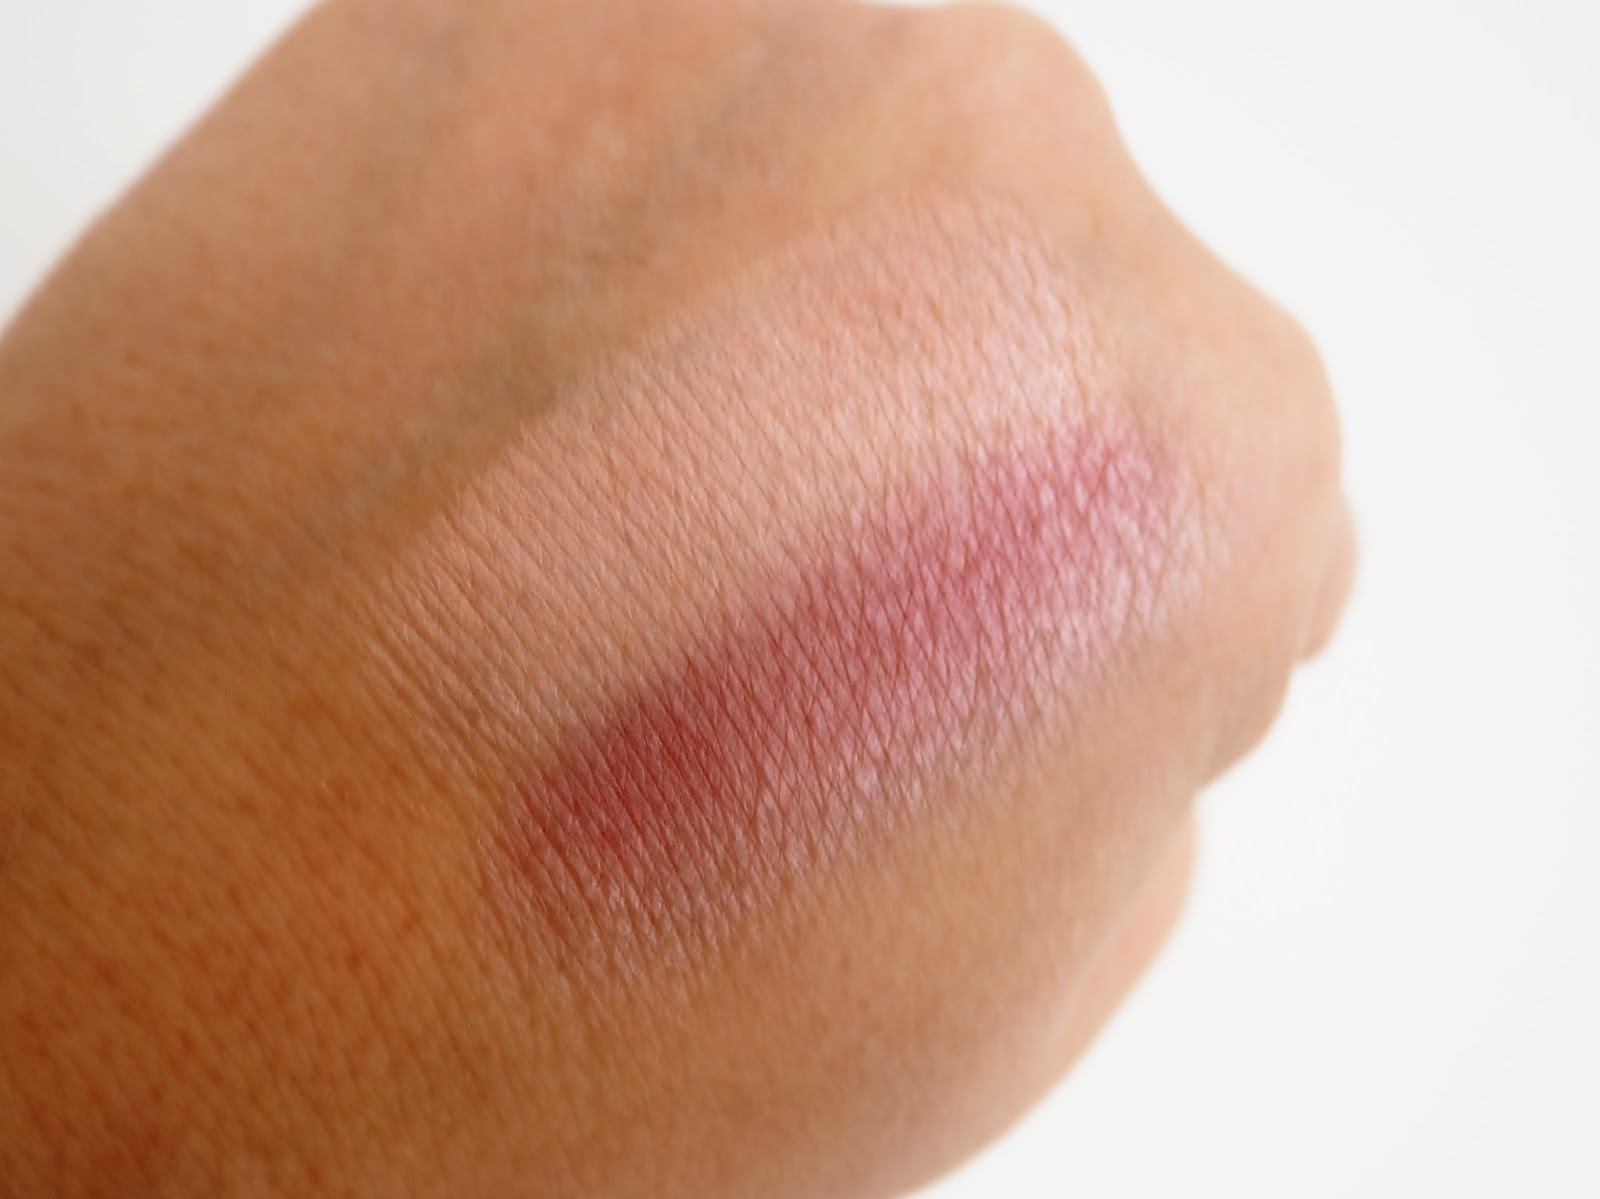 Laura Geller Baked Blush-N-Brighten in Ethereal Rose/Sateen Subtle Berry